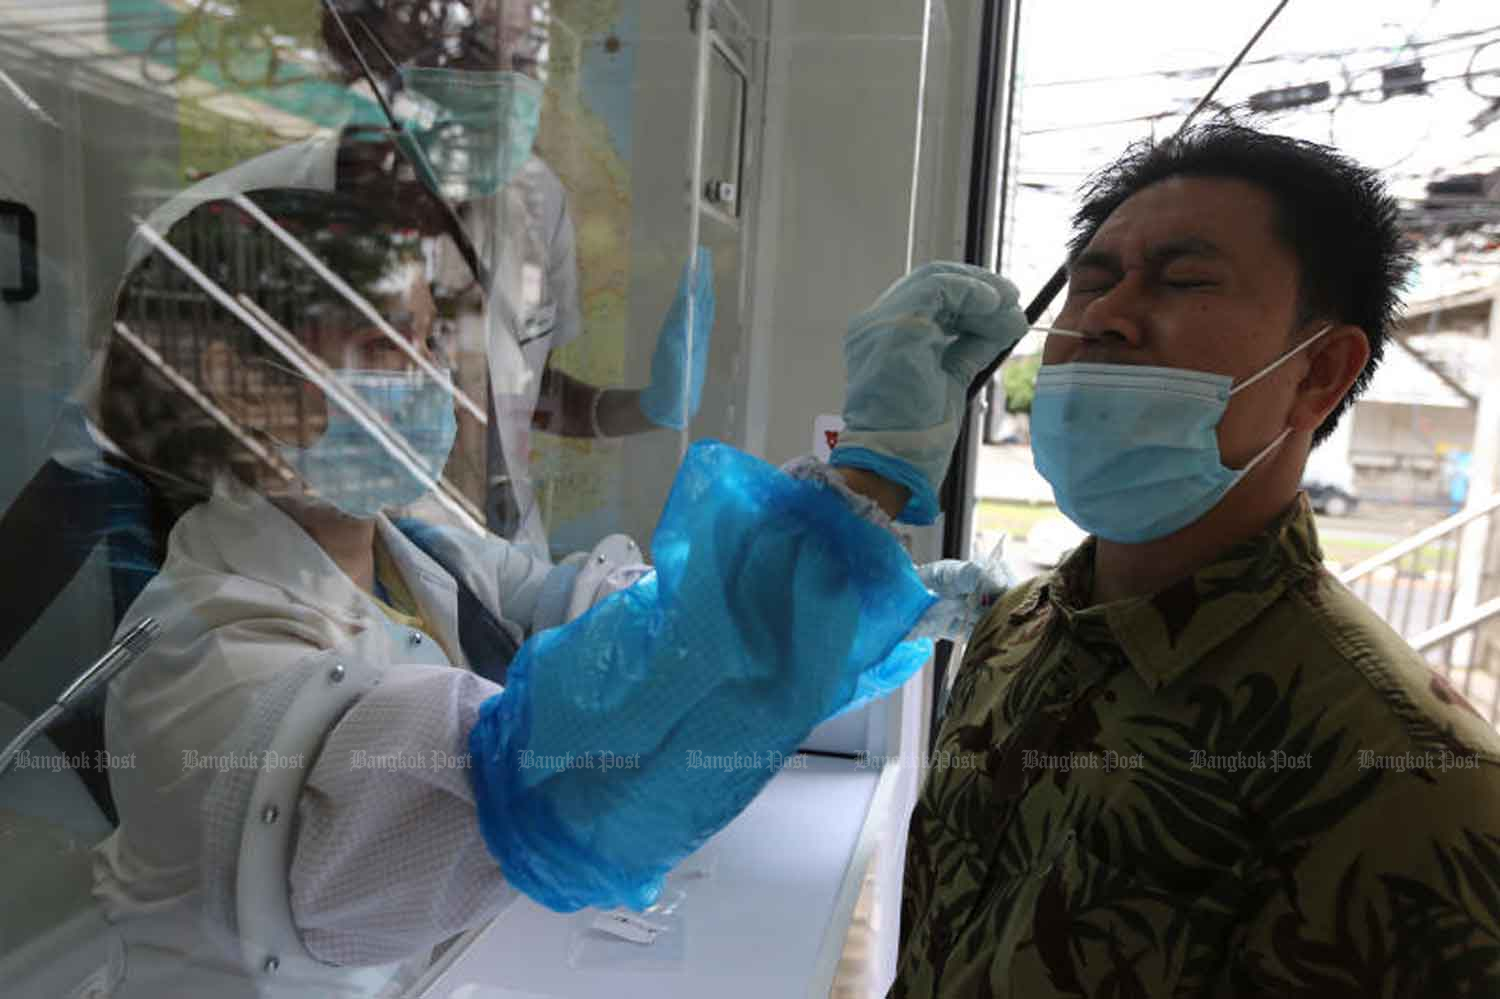 A health official takes a nasal swab from a person at Passione Shopping Destination (Laemtong) mall in Rayong province on Tuesday. The Disease Control Department said on Wednesday there was only a small chance someone may have caught Covid-19 from the infected Egyptian soldier.(Photo: Wichan Charoenkiatpakul)